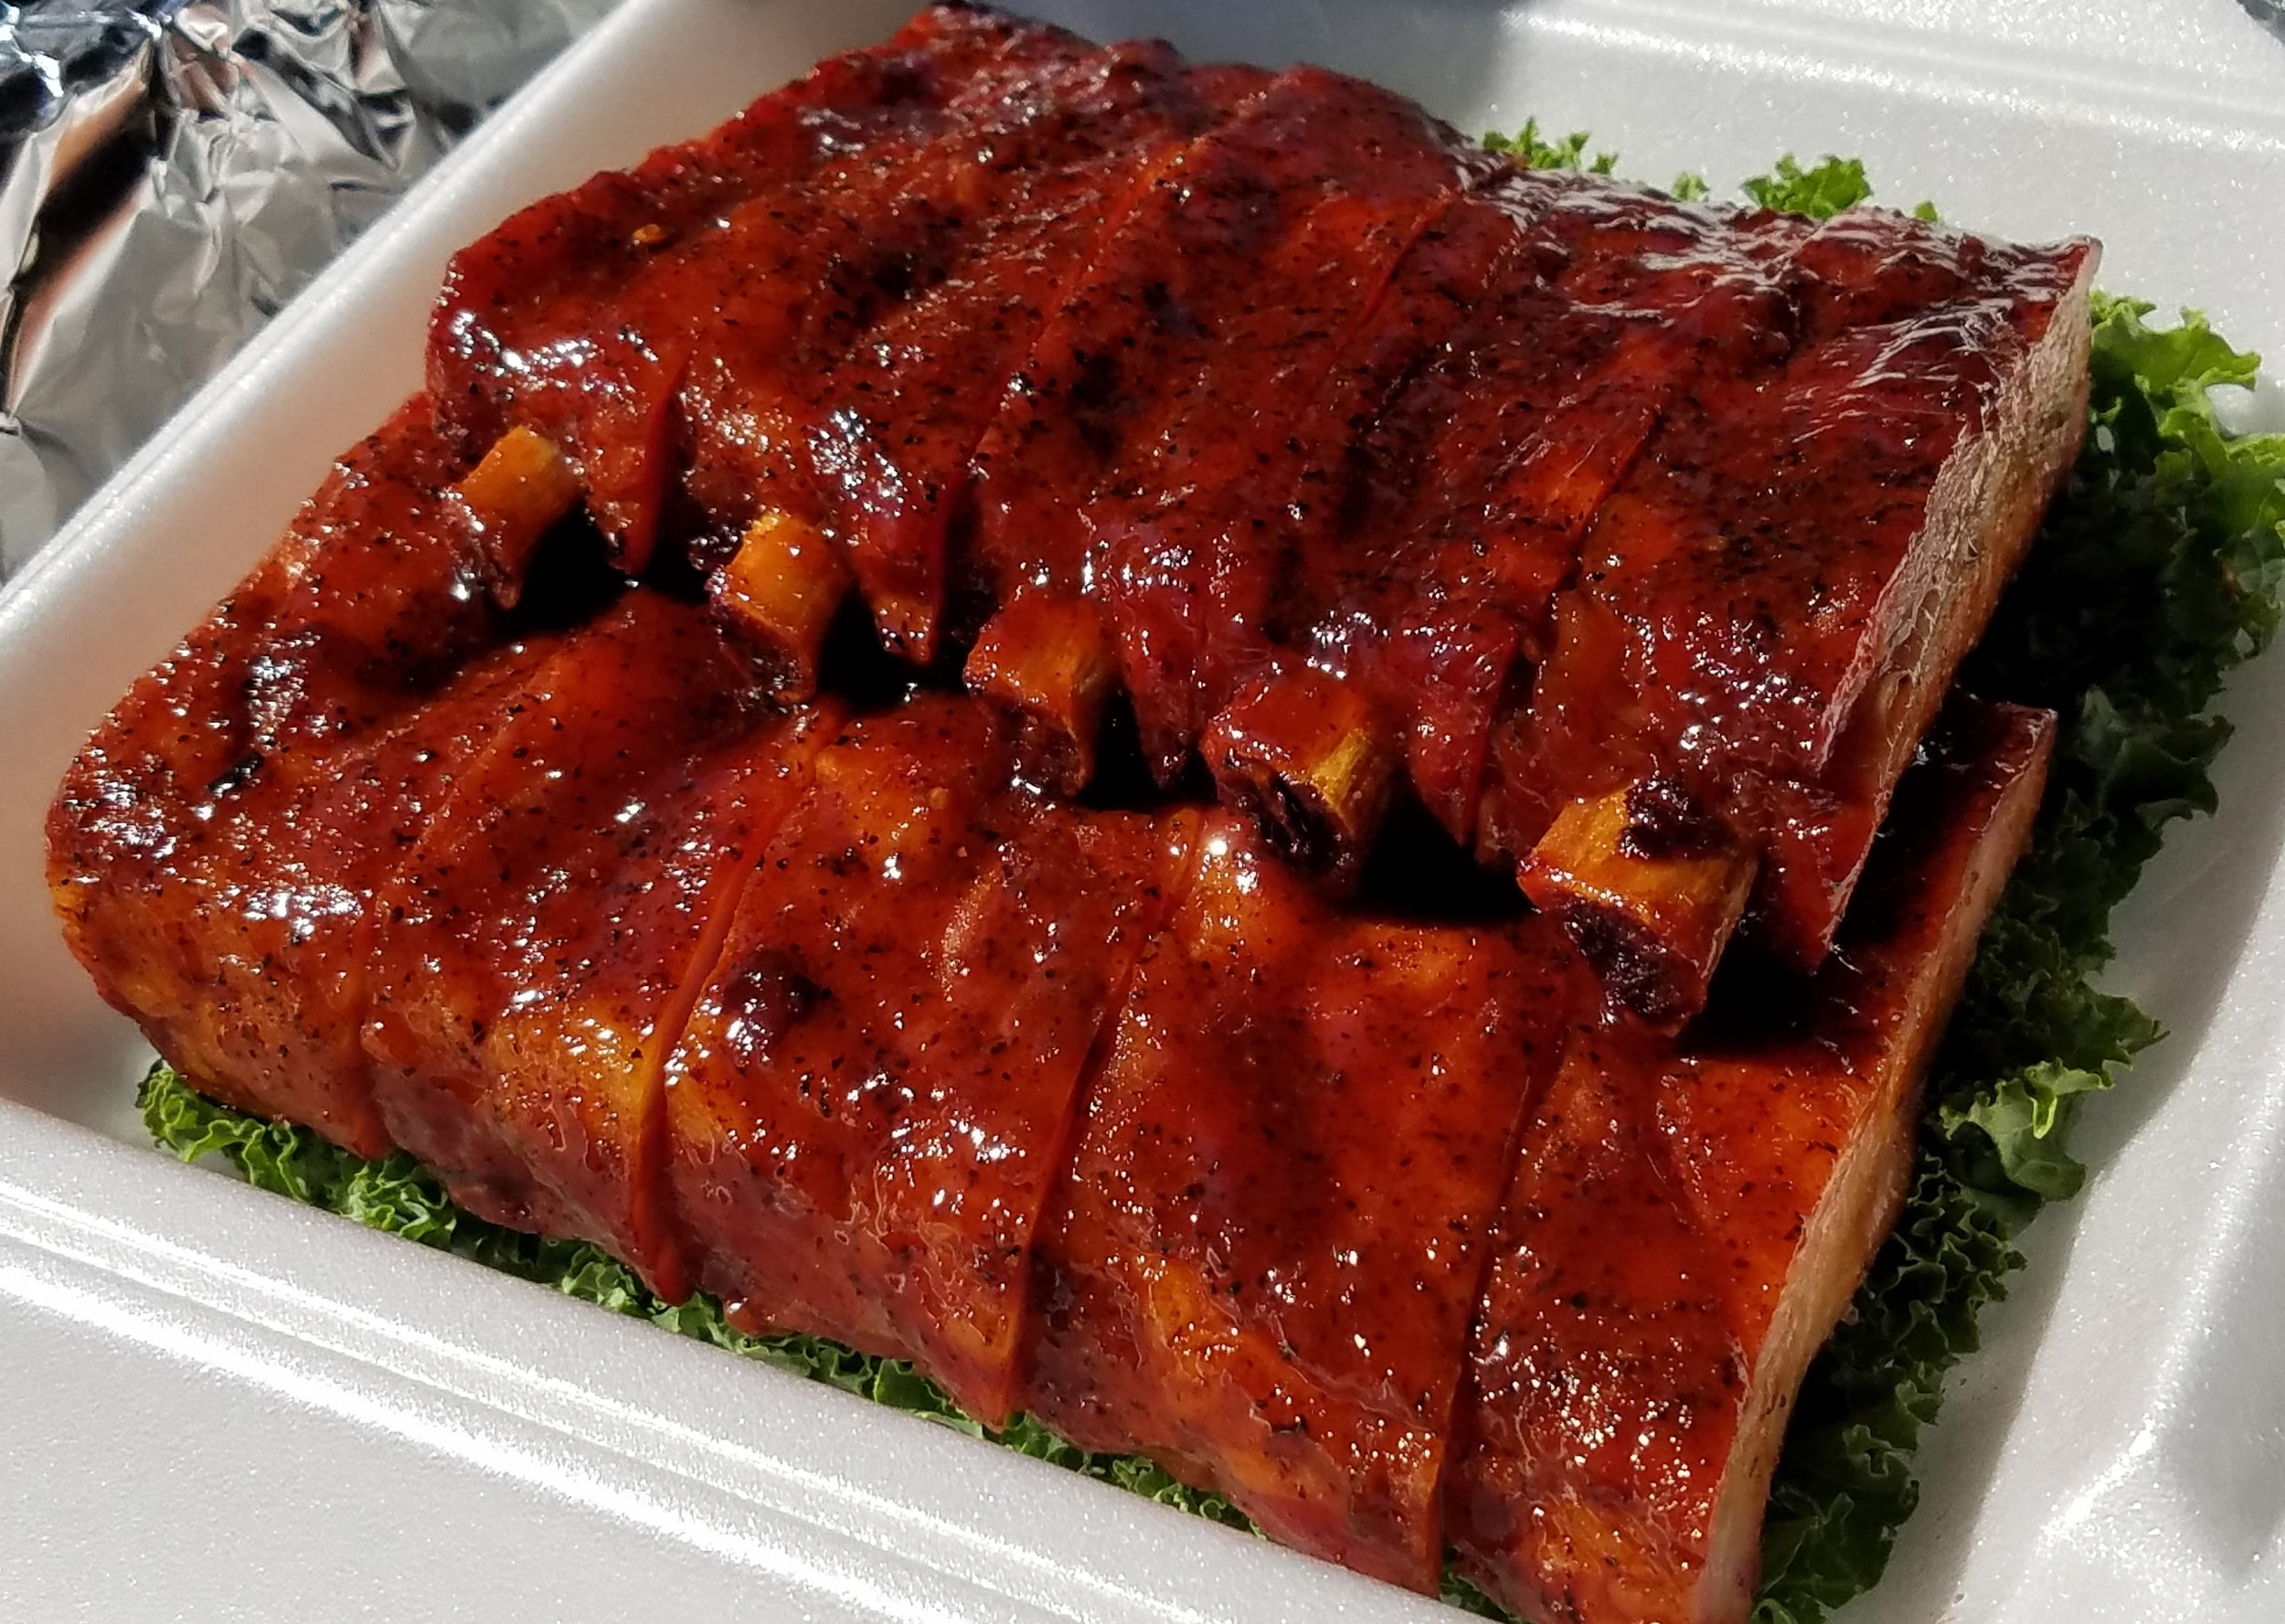 Ribs - Spare, St. Louis, Baby Back, Country Style. How can you go wrong when choosing this option? Prepared the same as in our competitions & smoked to perfection, our ribs are unmatched in the Metro area, so don't skip them in your next order. Check social media for smoked meat specials